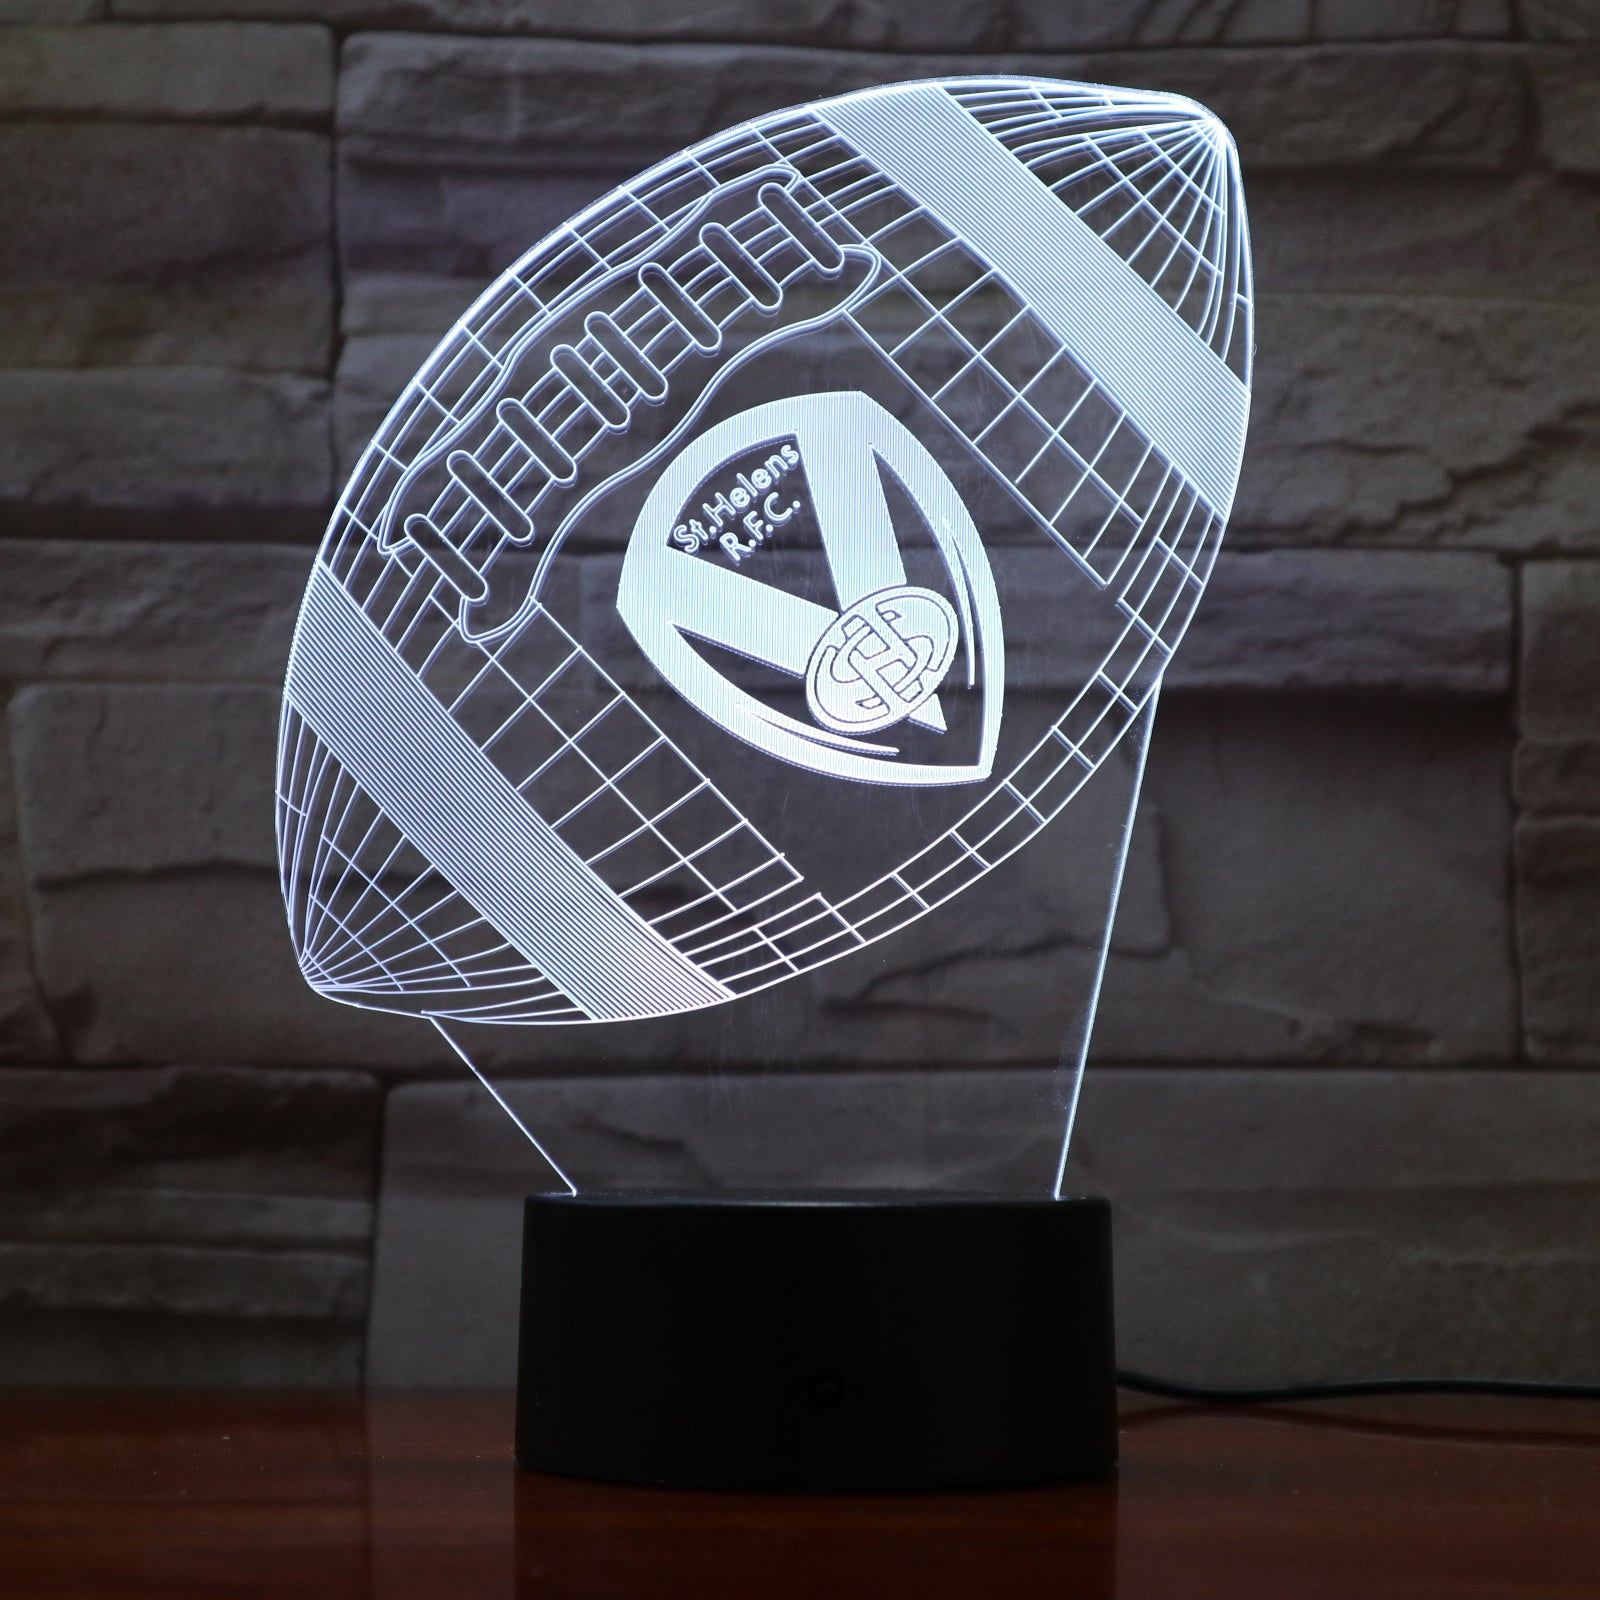 American Football 9 - 3D Optical Illusion LED Lamp Hologram